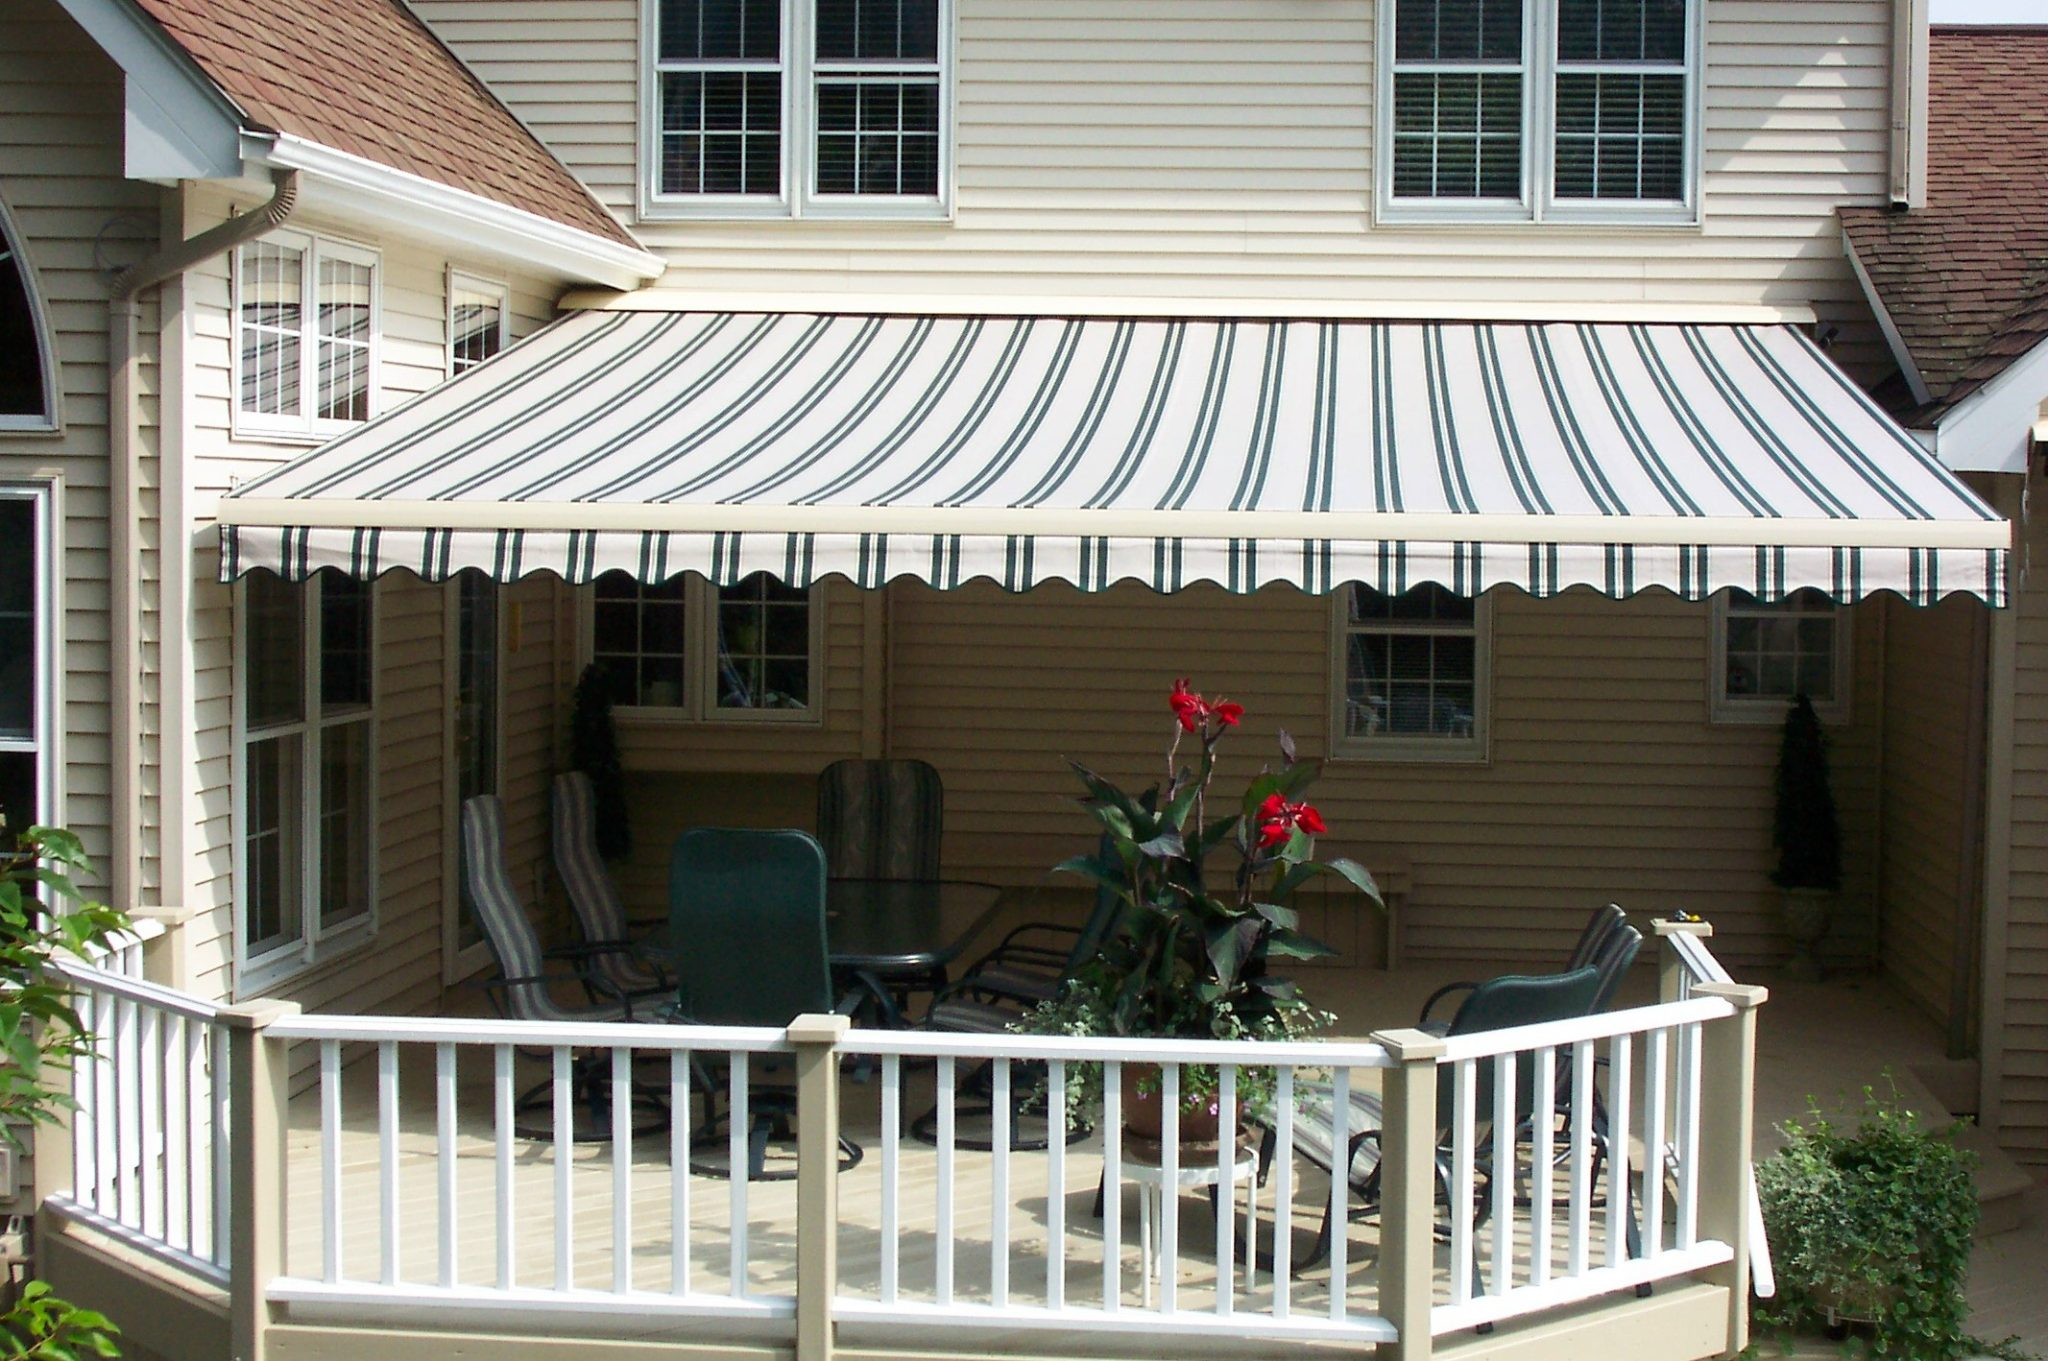 Sunsetter Retractable Awnings 28 Images Where Are Sunsetter Awnings Made 28 Images Sunsetter